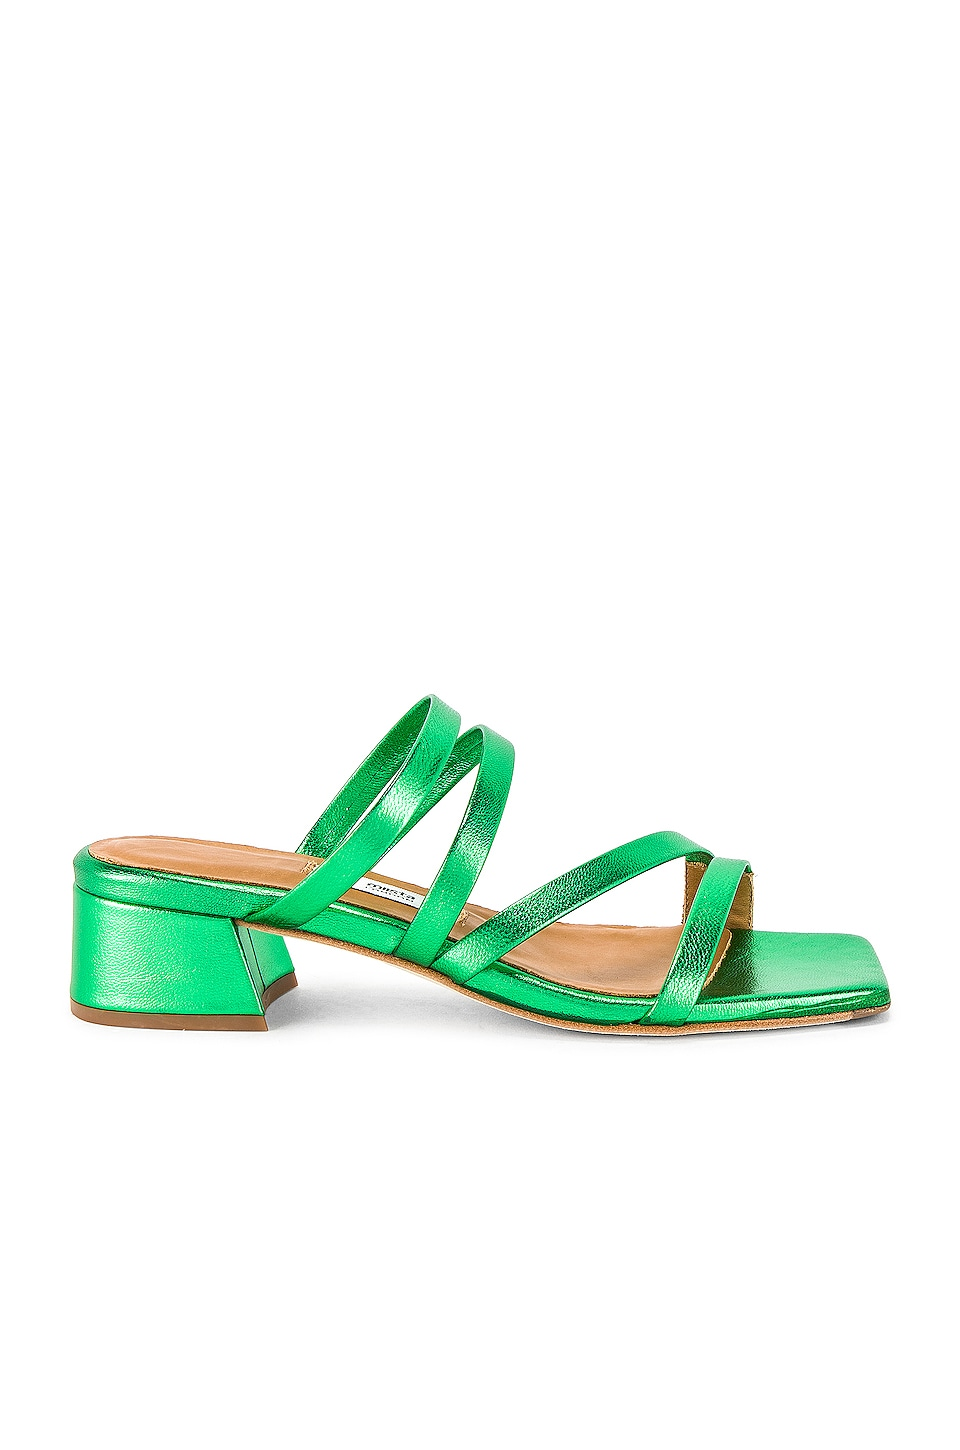 Miista Eva Sandal in Metallic Green Leather